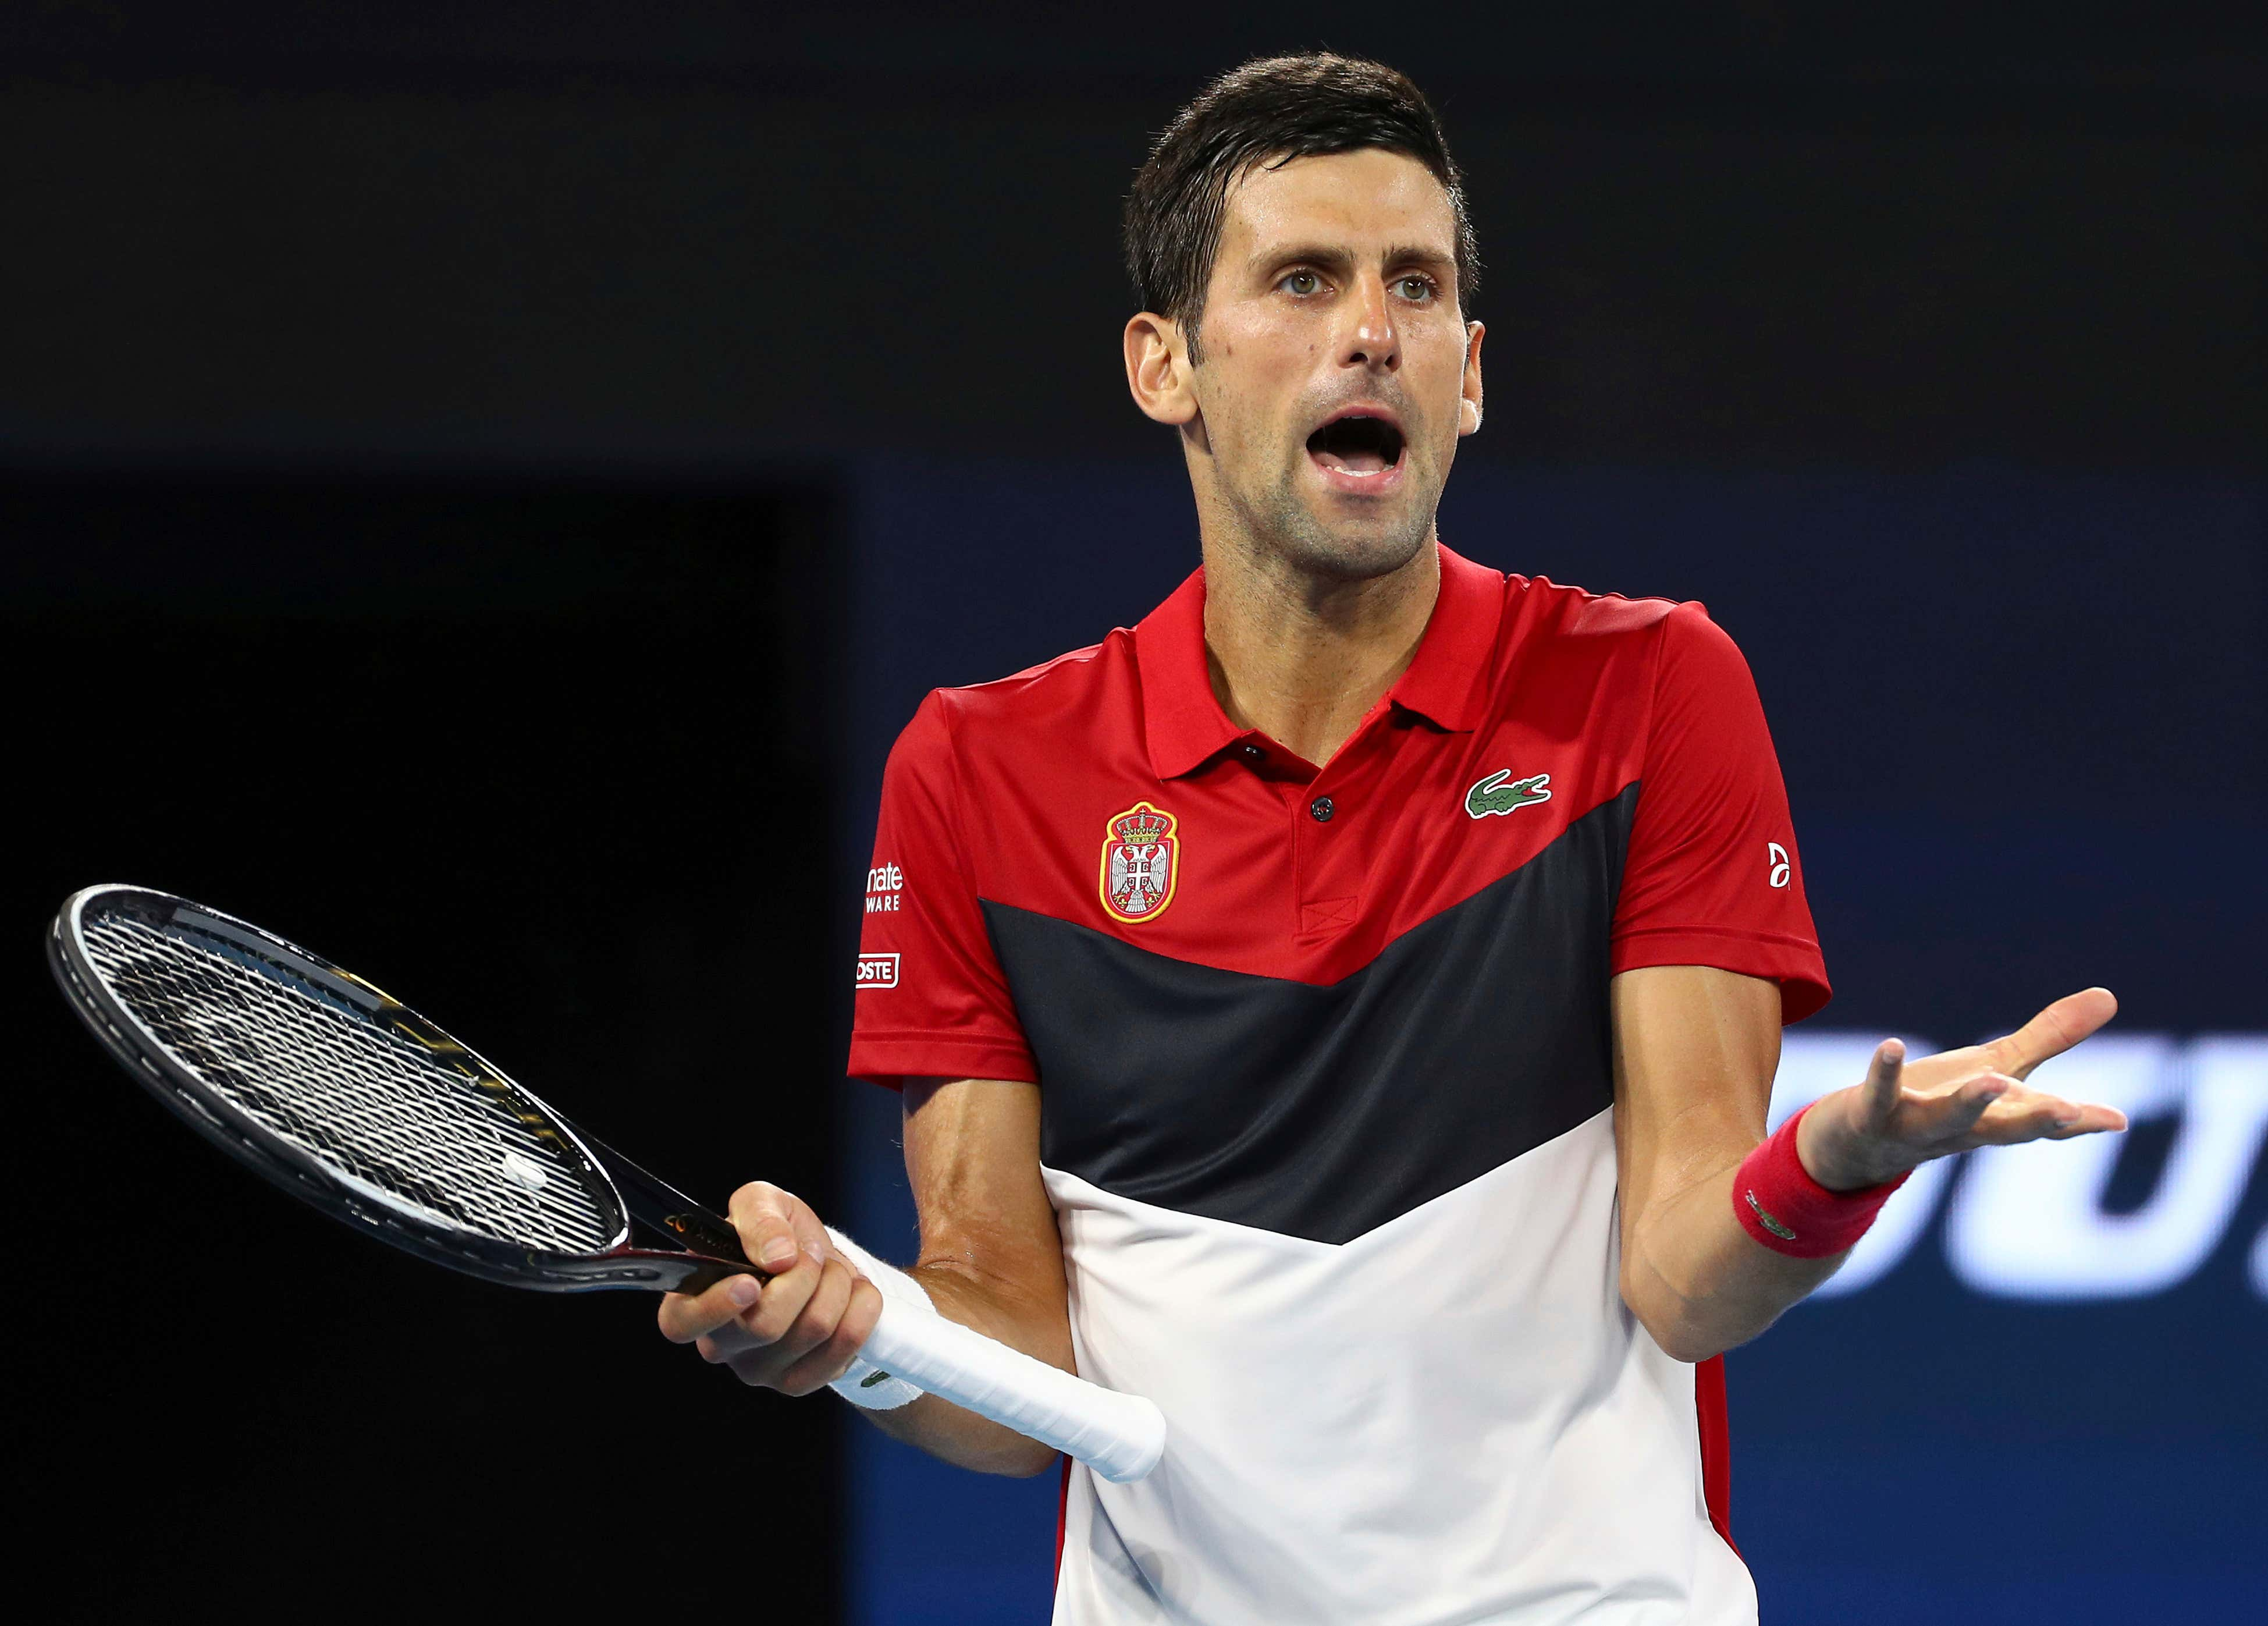 Novak Djokovic, ATP Cup 2020. Novak Djokovic of Serbia reacts after being heckled by a spectator during his match against Kevin Anderson of South Africa at the ATP Cup tennis tournament in Brisbane, Australia